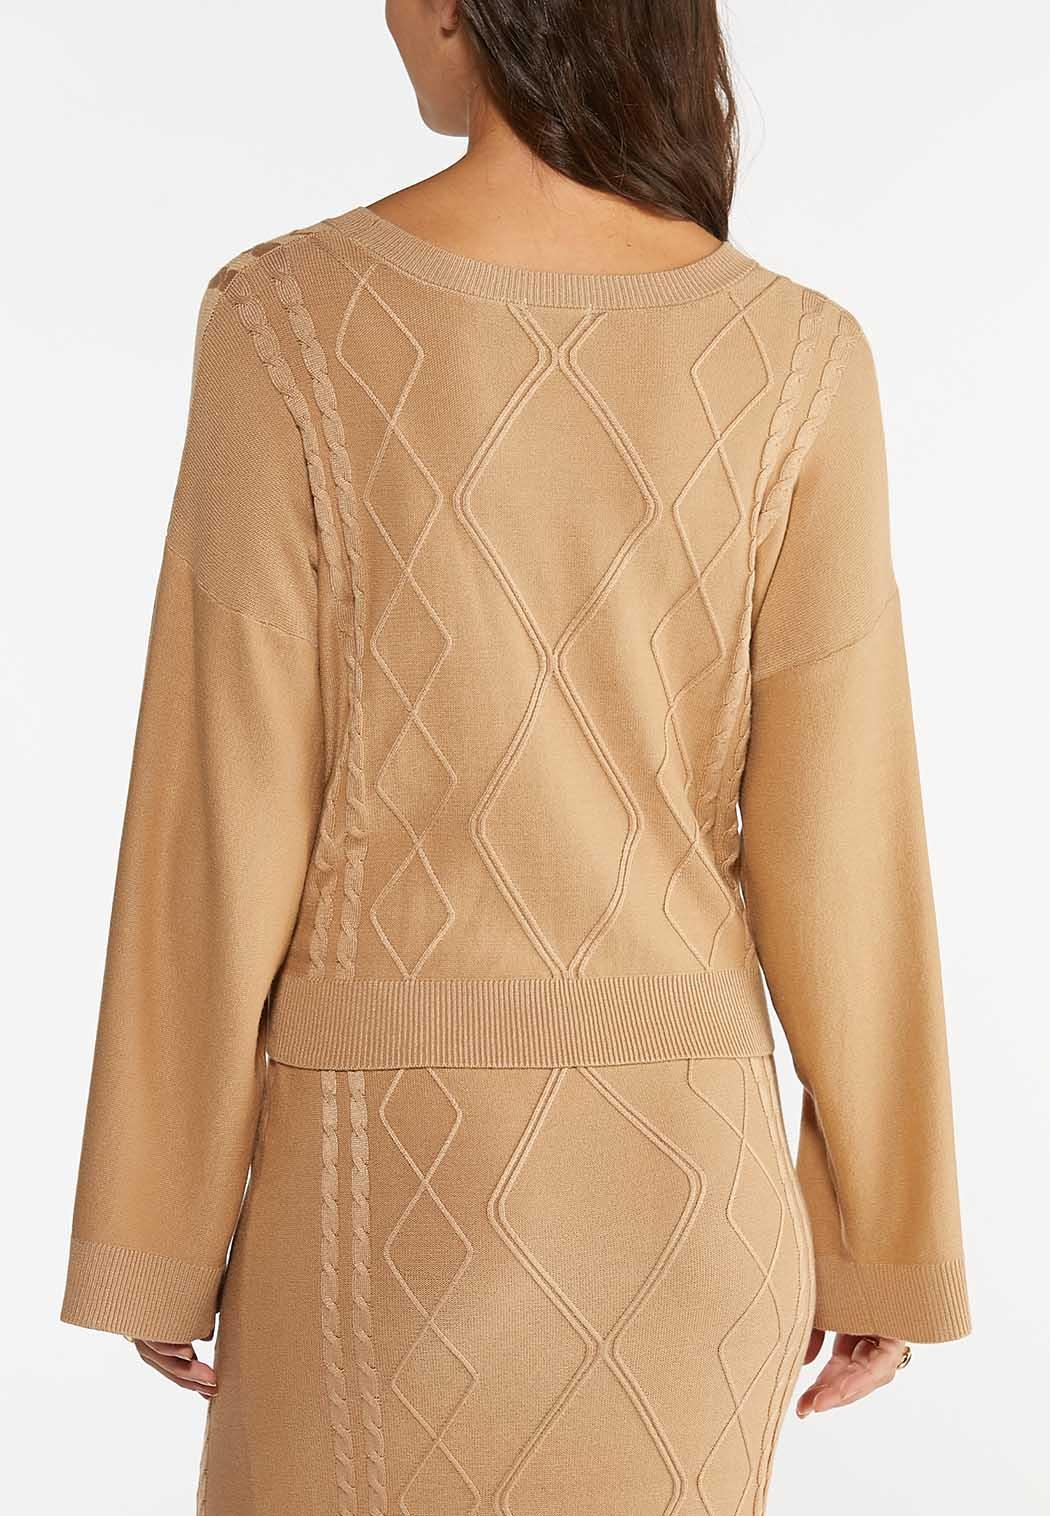 Caramel Cable Knit Sweater (Item #44403035)